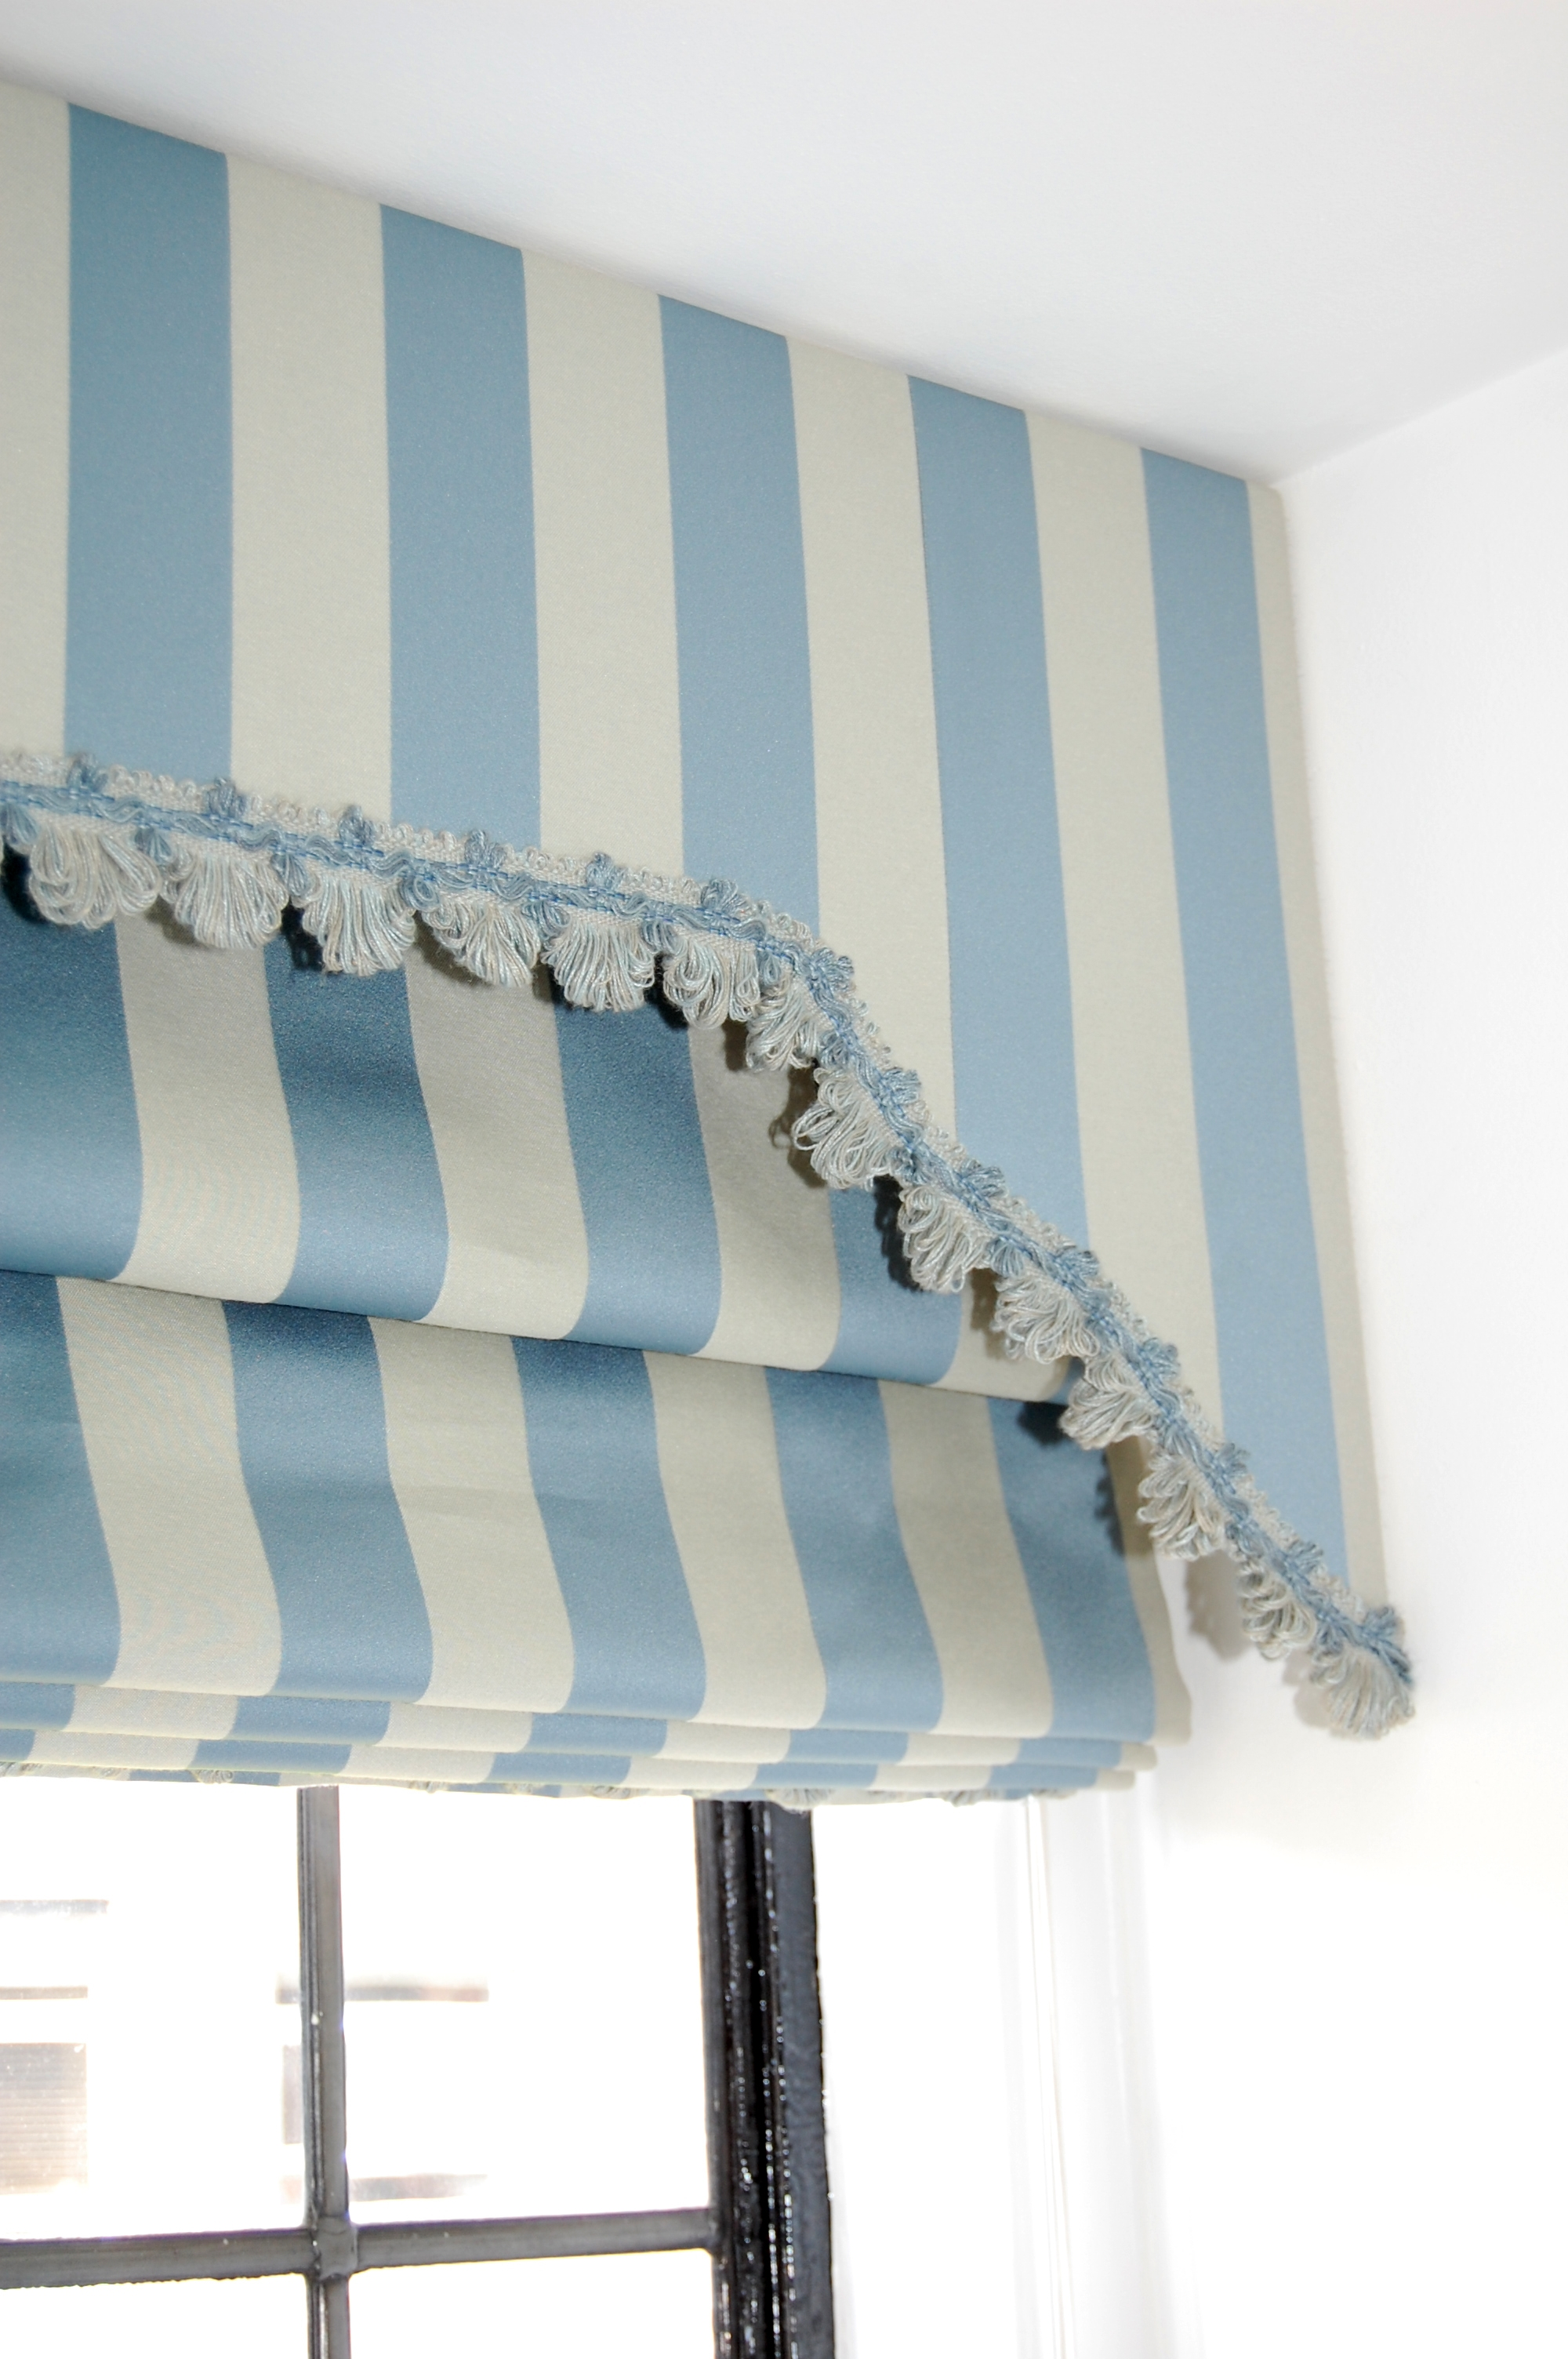 roman chair alternative velvet dining covers 15 photos blue and white striped blinds curtain ideas